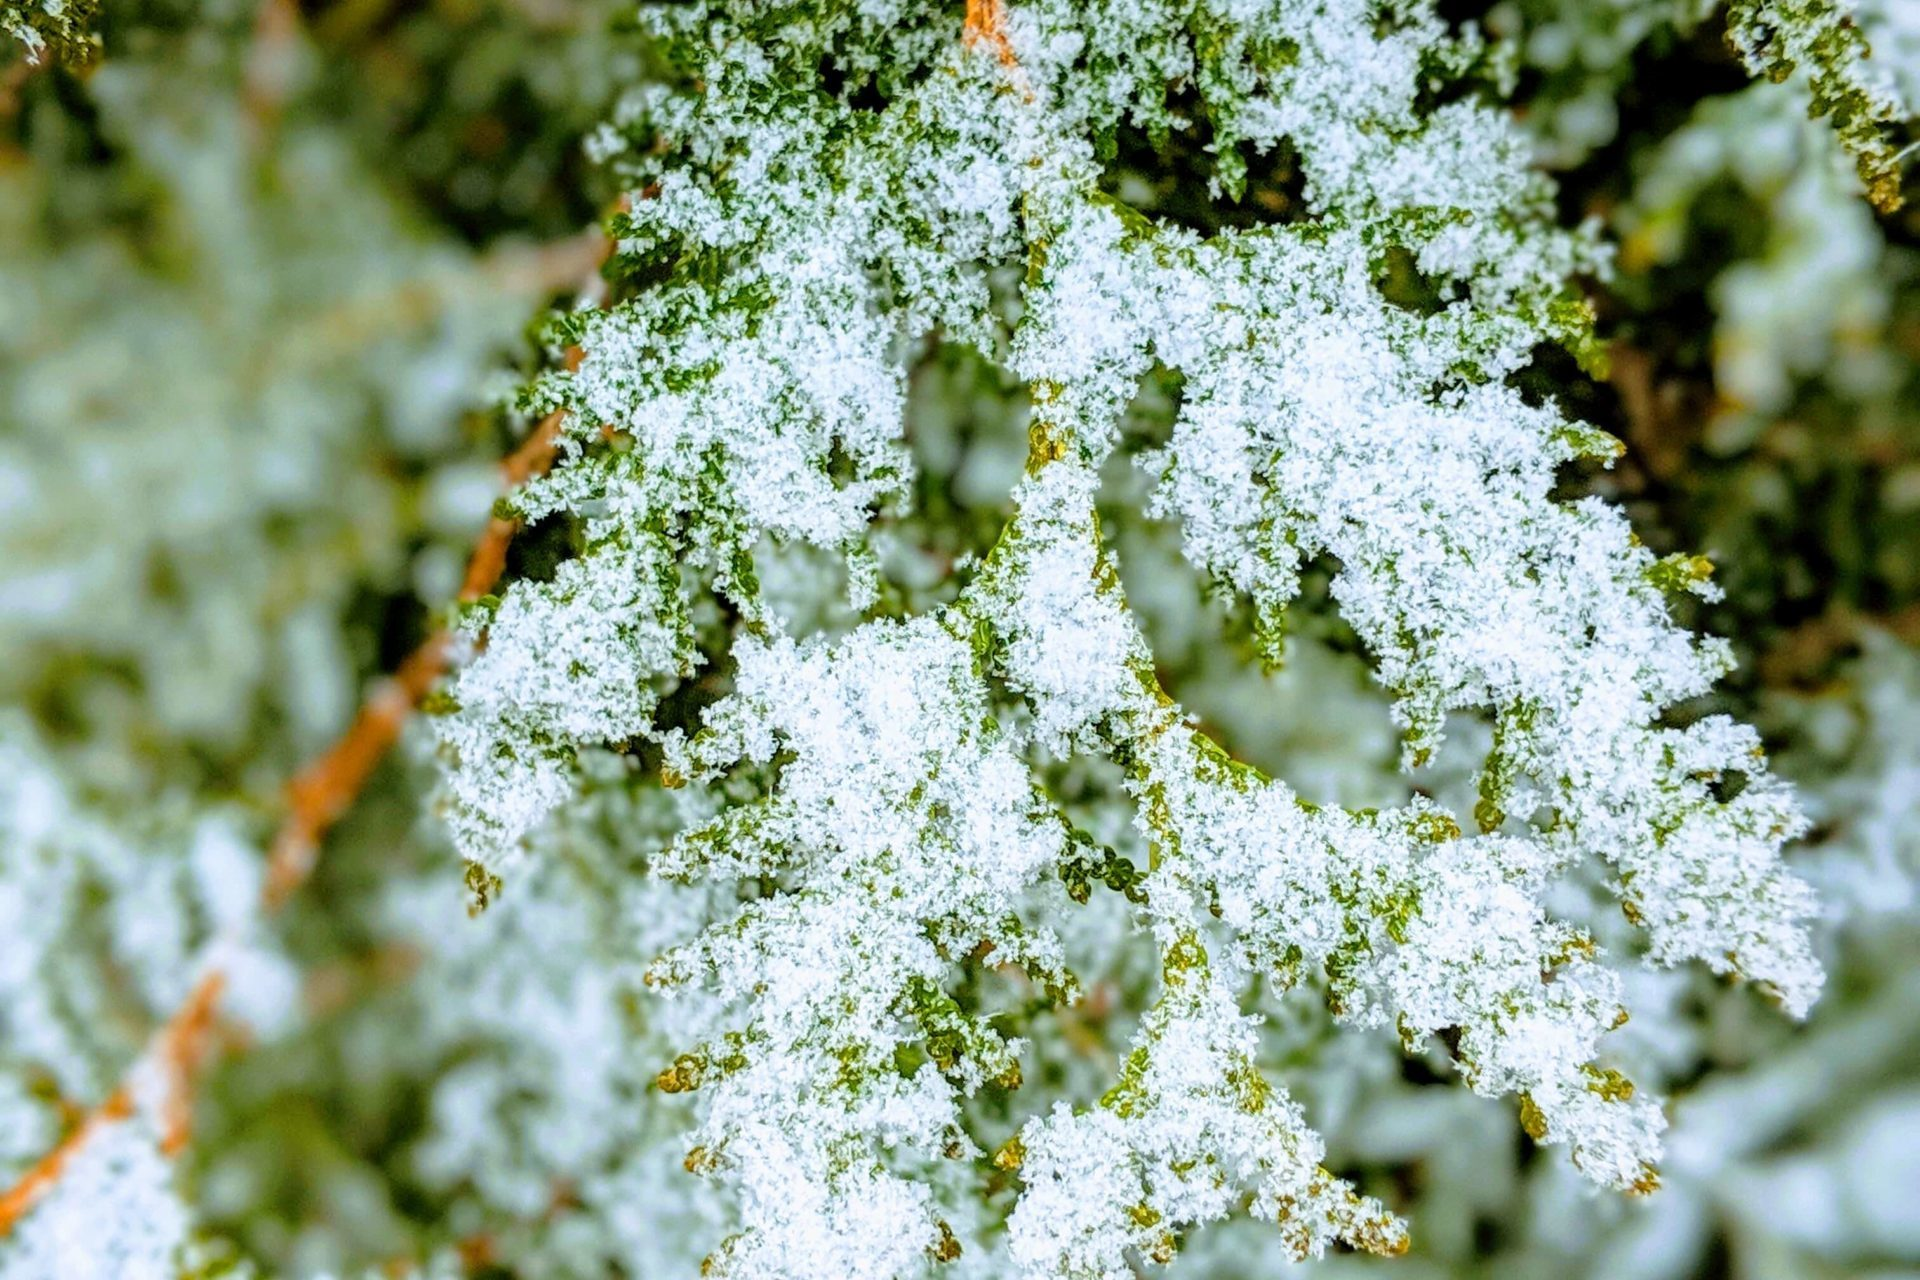 Cedar is a great option if you want to add a touch of green in your winter garden. Photo: snow on cedar at GreenUP Ecology Park.